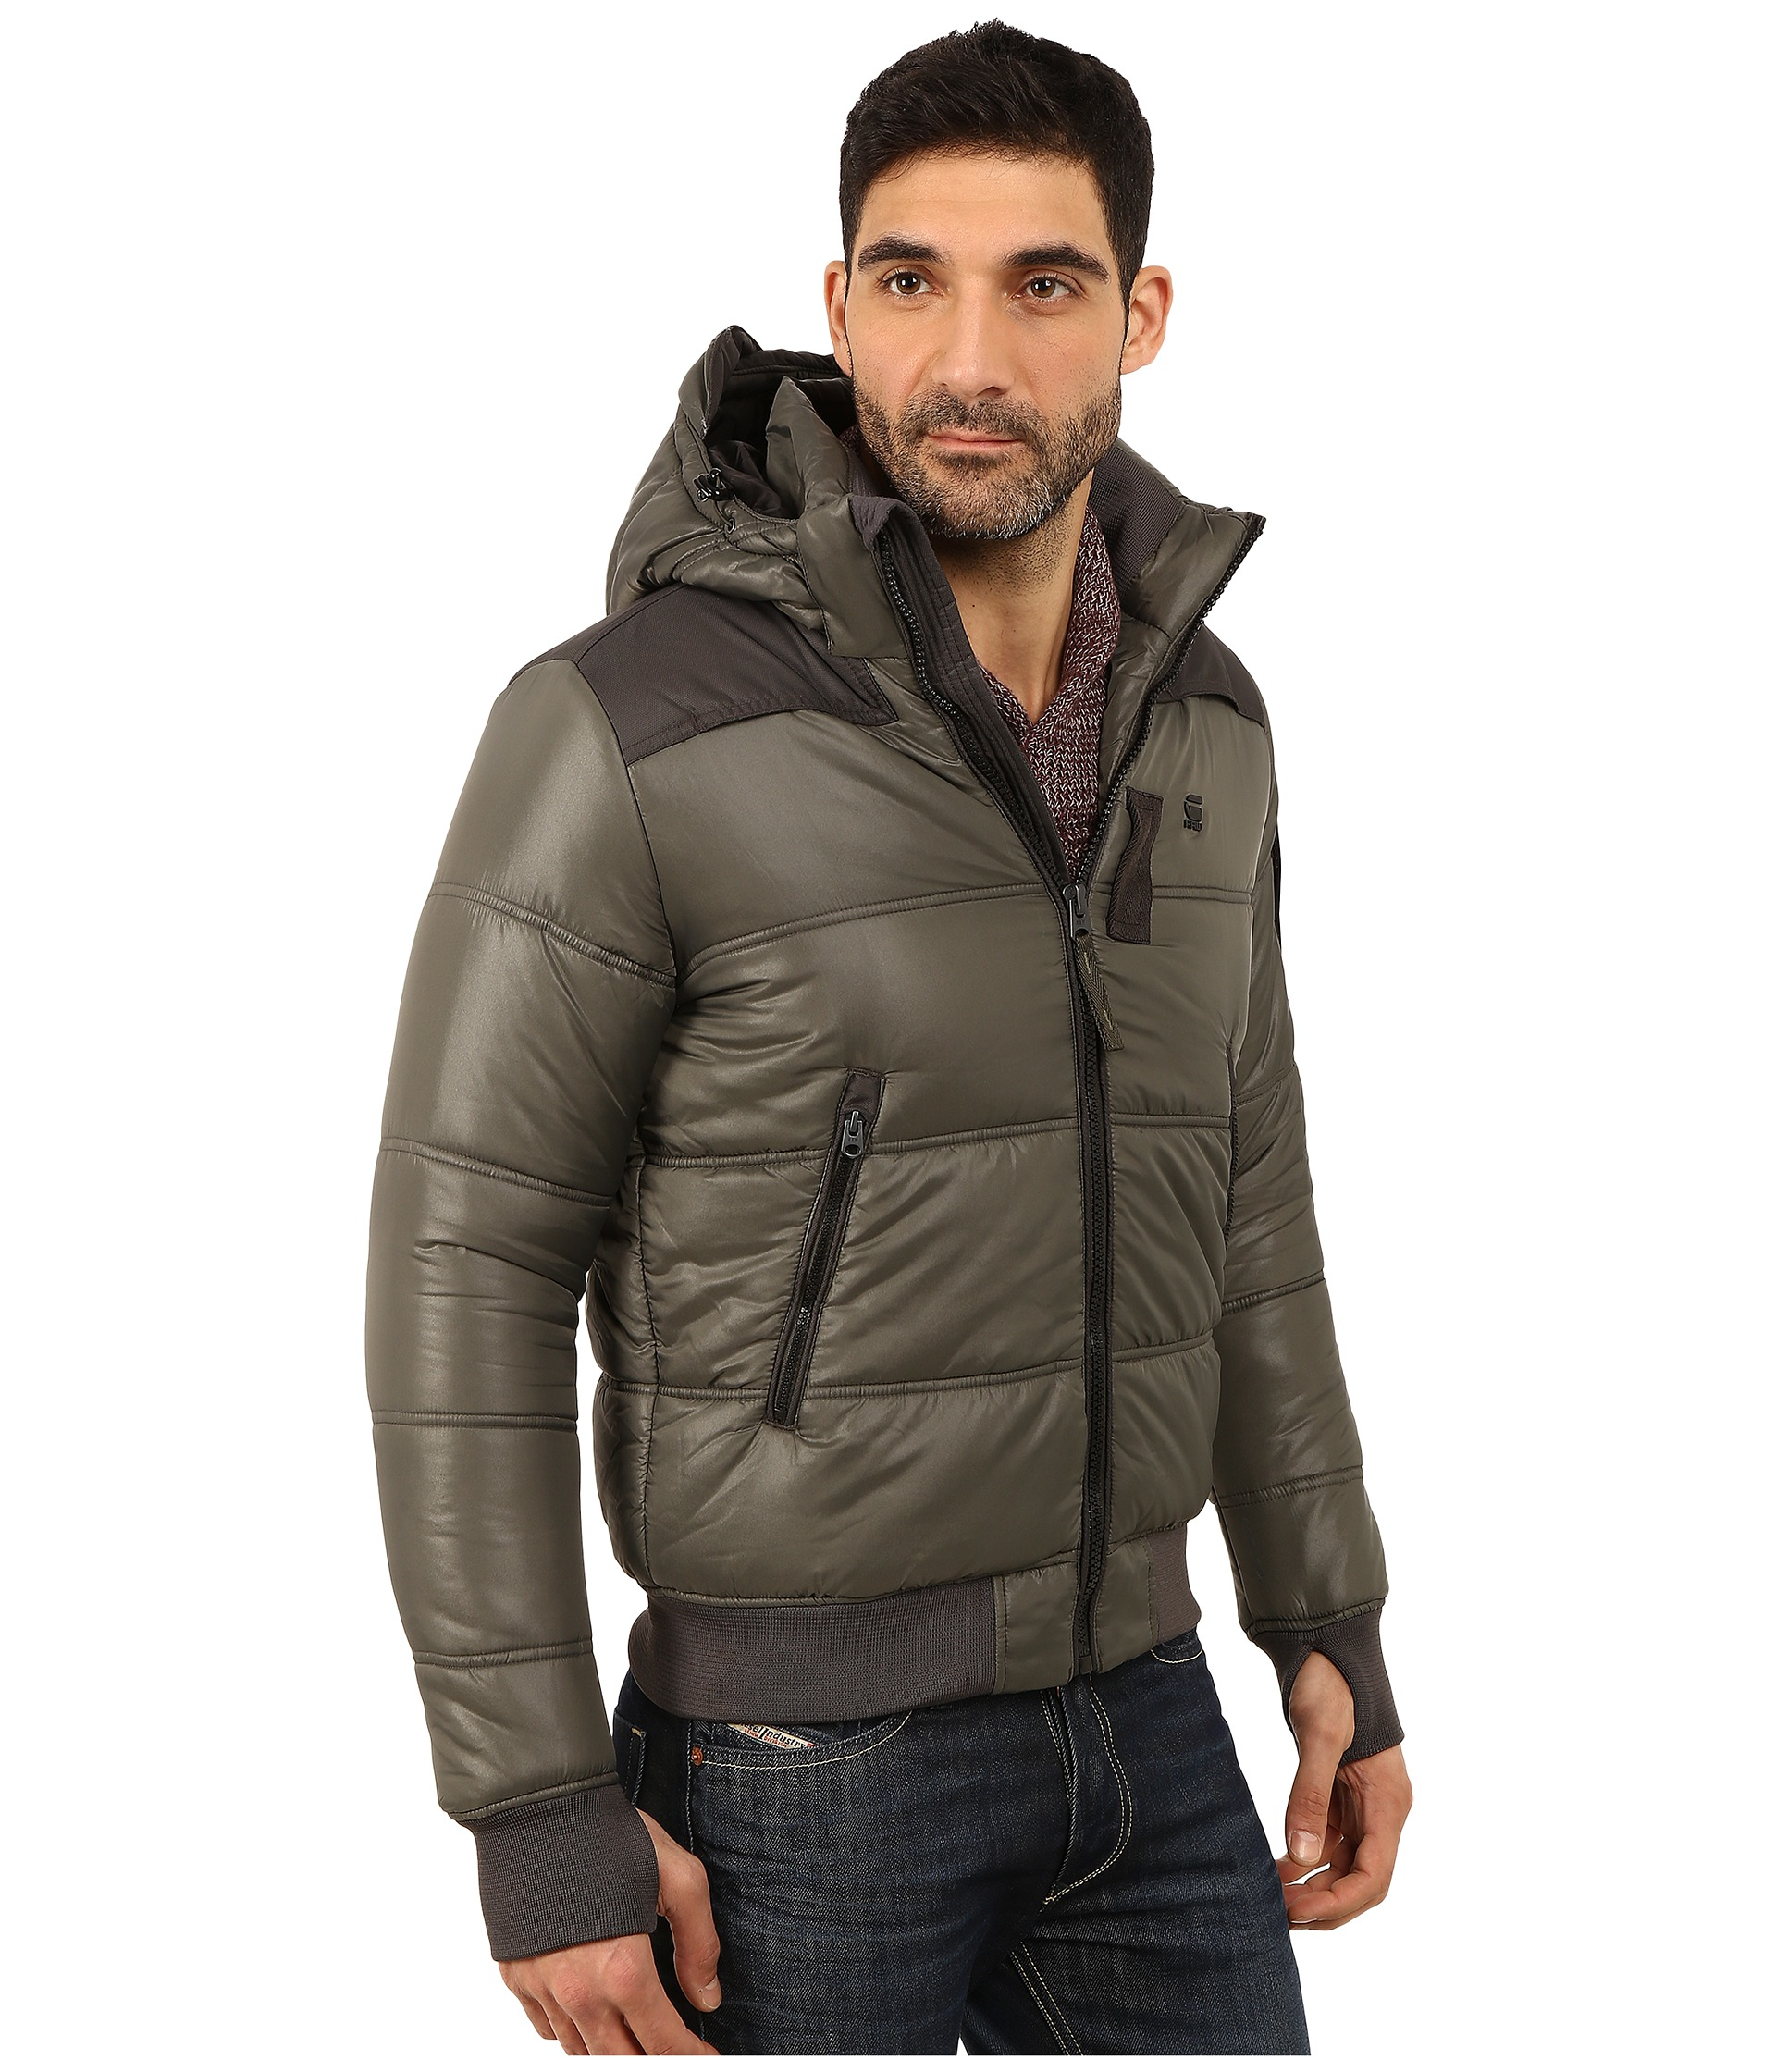 G-star raw Whistler Hooded Bomber Jacket in Gray for Men | Lyst